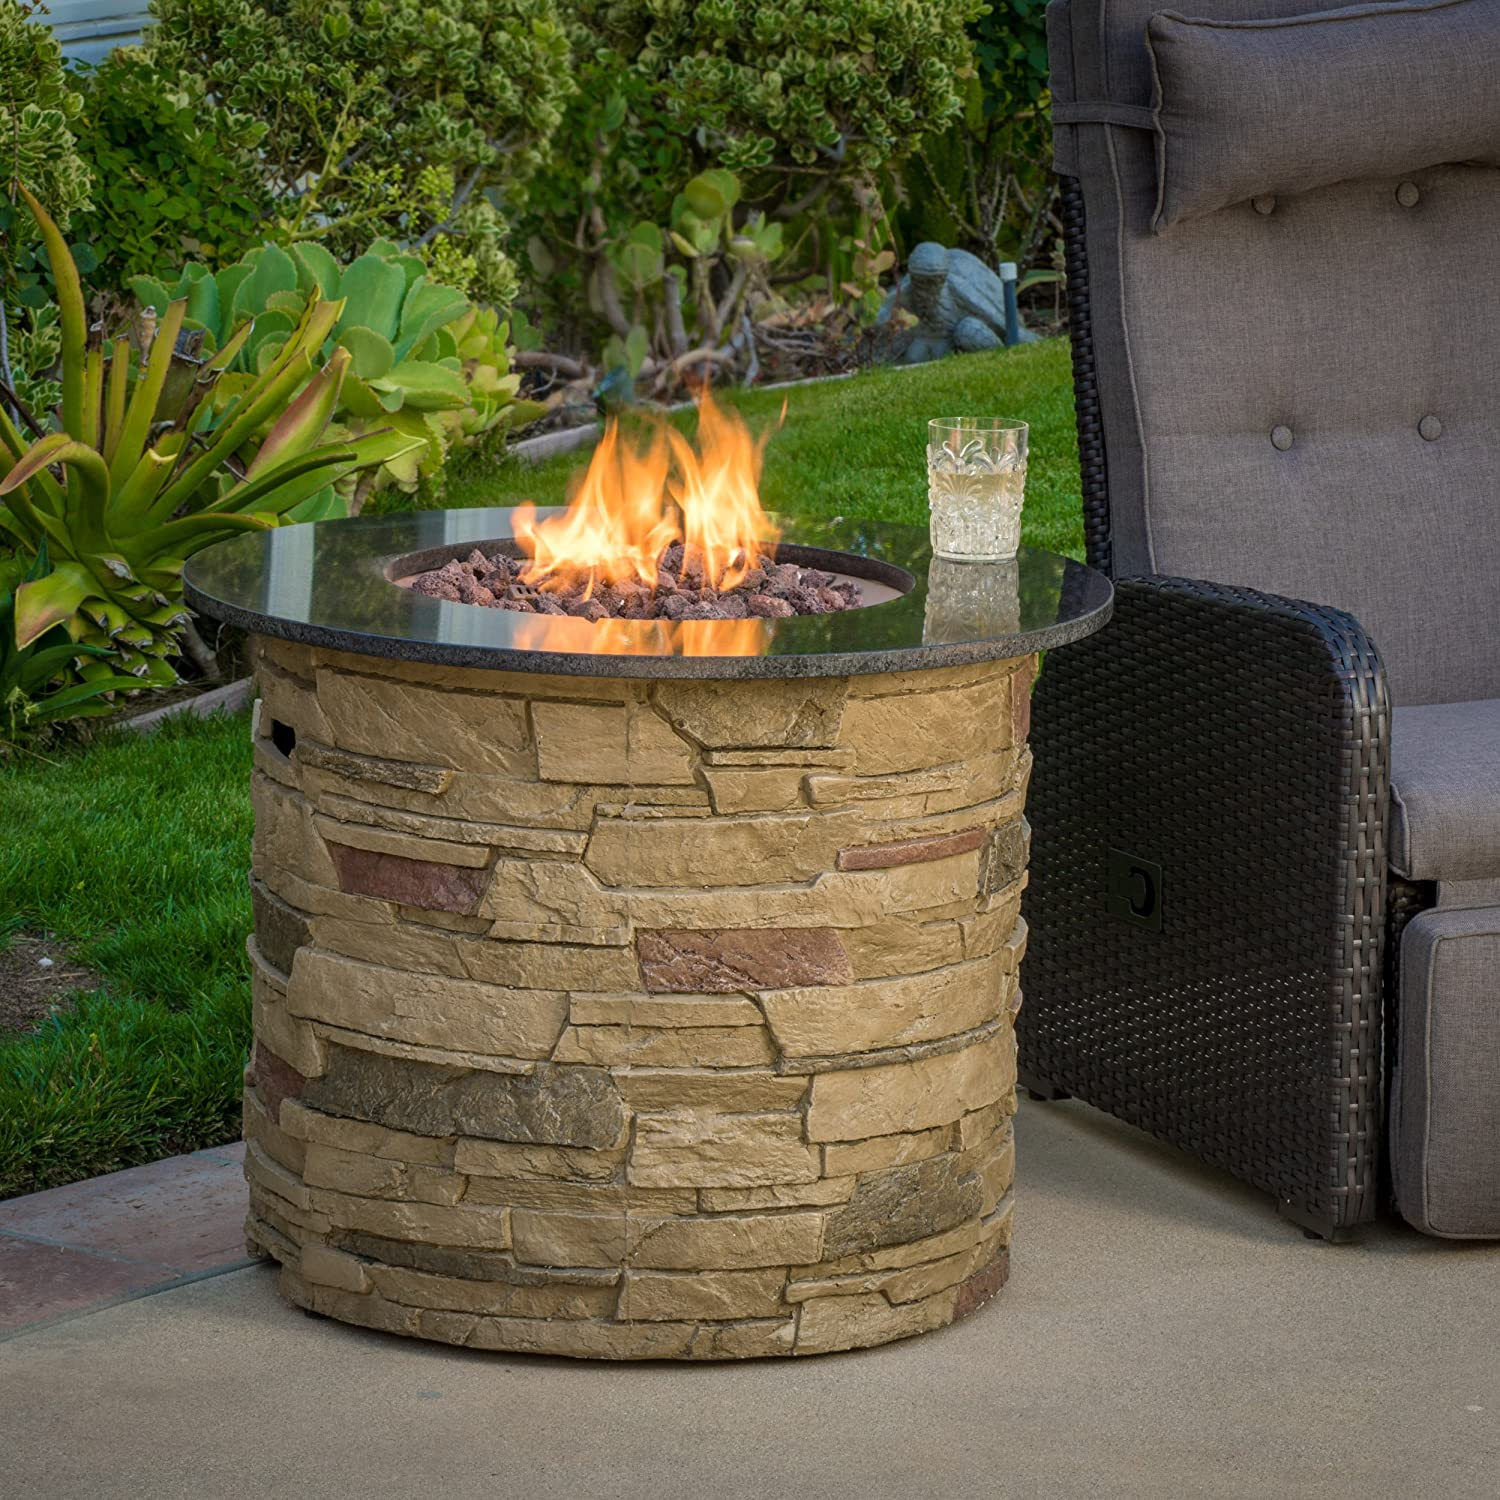 8 Best Rustic Stone Fire Pits That Don't Rust